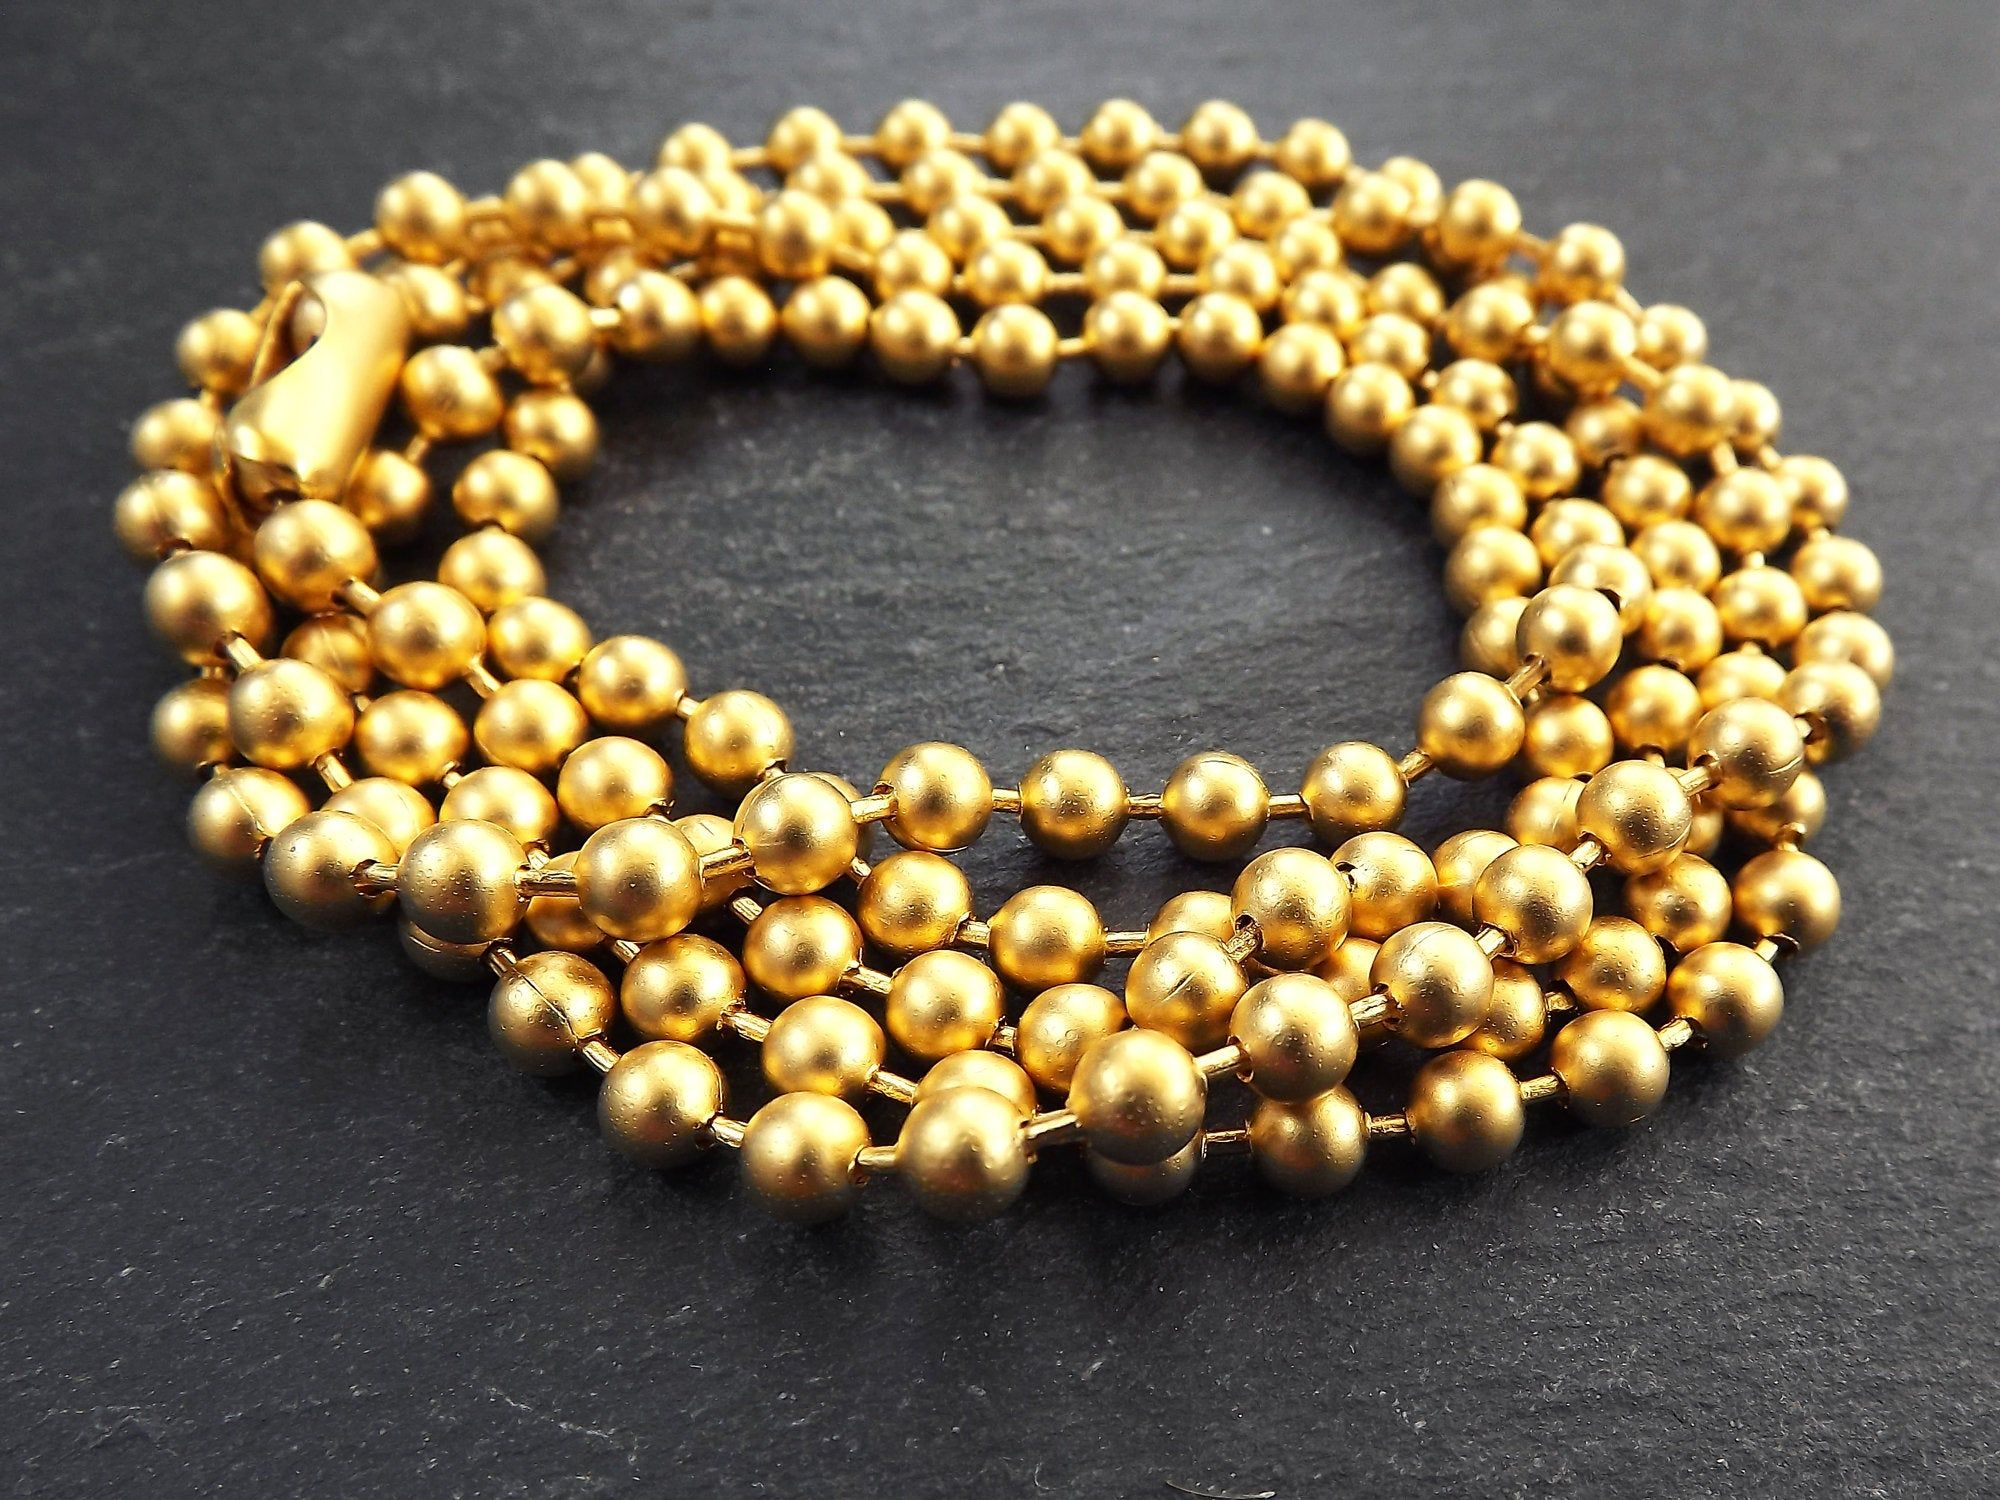 4.5mm Gold Ball Bead Chain Large Thick Round Link Chain